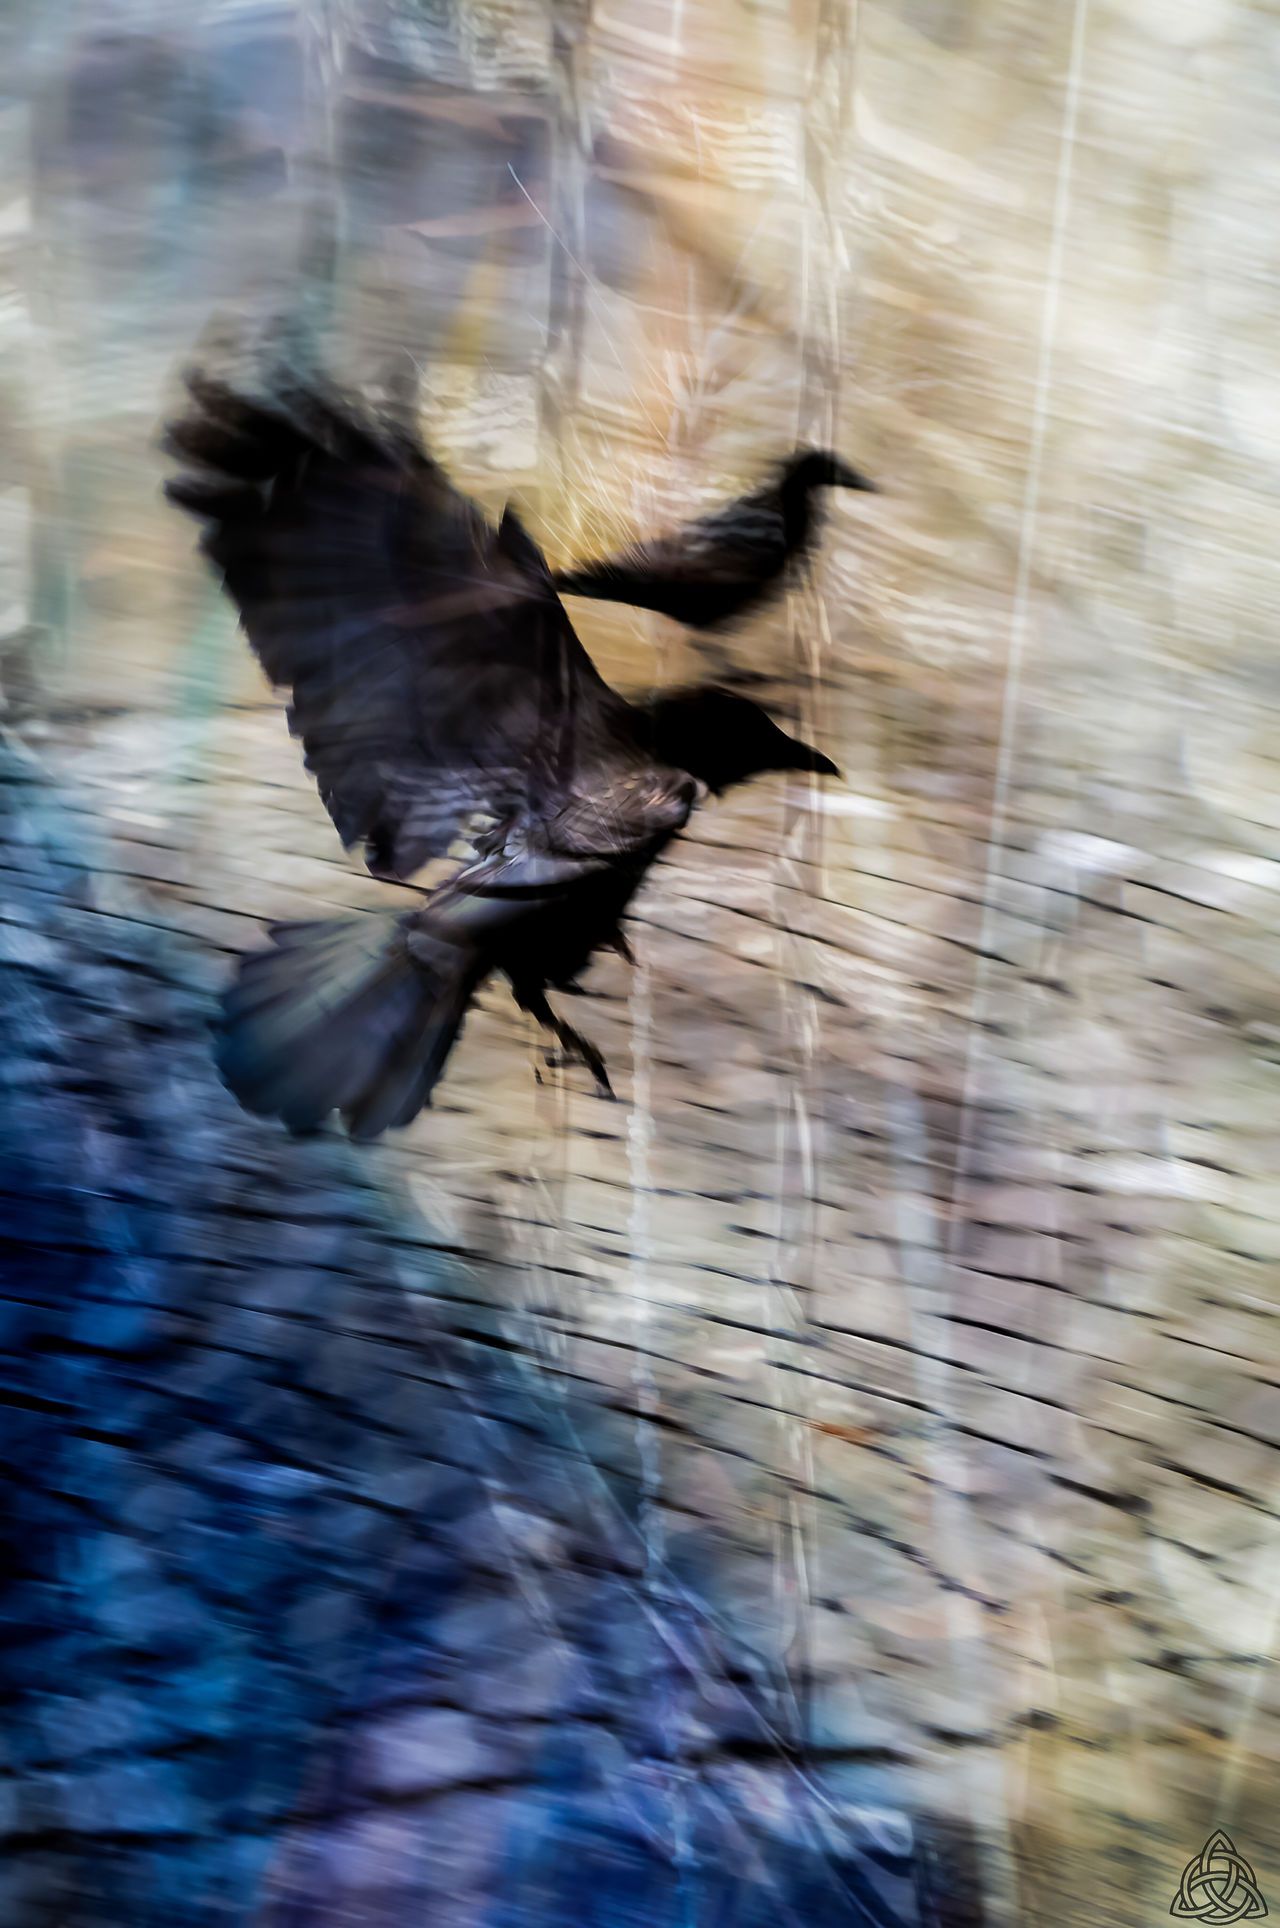 Black birds... Flying Bird Animal Themes Outdoors Motion No People Nature Nature EyeEm Masterclass Eyemphotography Eyembestpics EyeEm Best Shots Eyeemphoto EyeEm Market © Blurred Motion Eyem Collection Lausanne, Switzerland Multi Colored Eyem Best Shots EyeEm Gallery EyeEm Best Edits Ravens Nation Ravens Eyem Blur